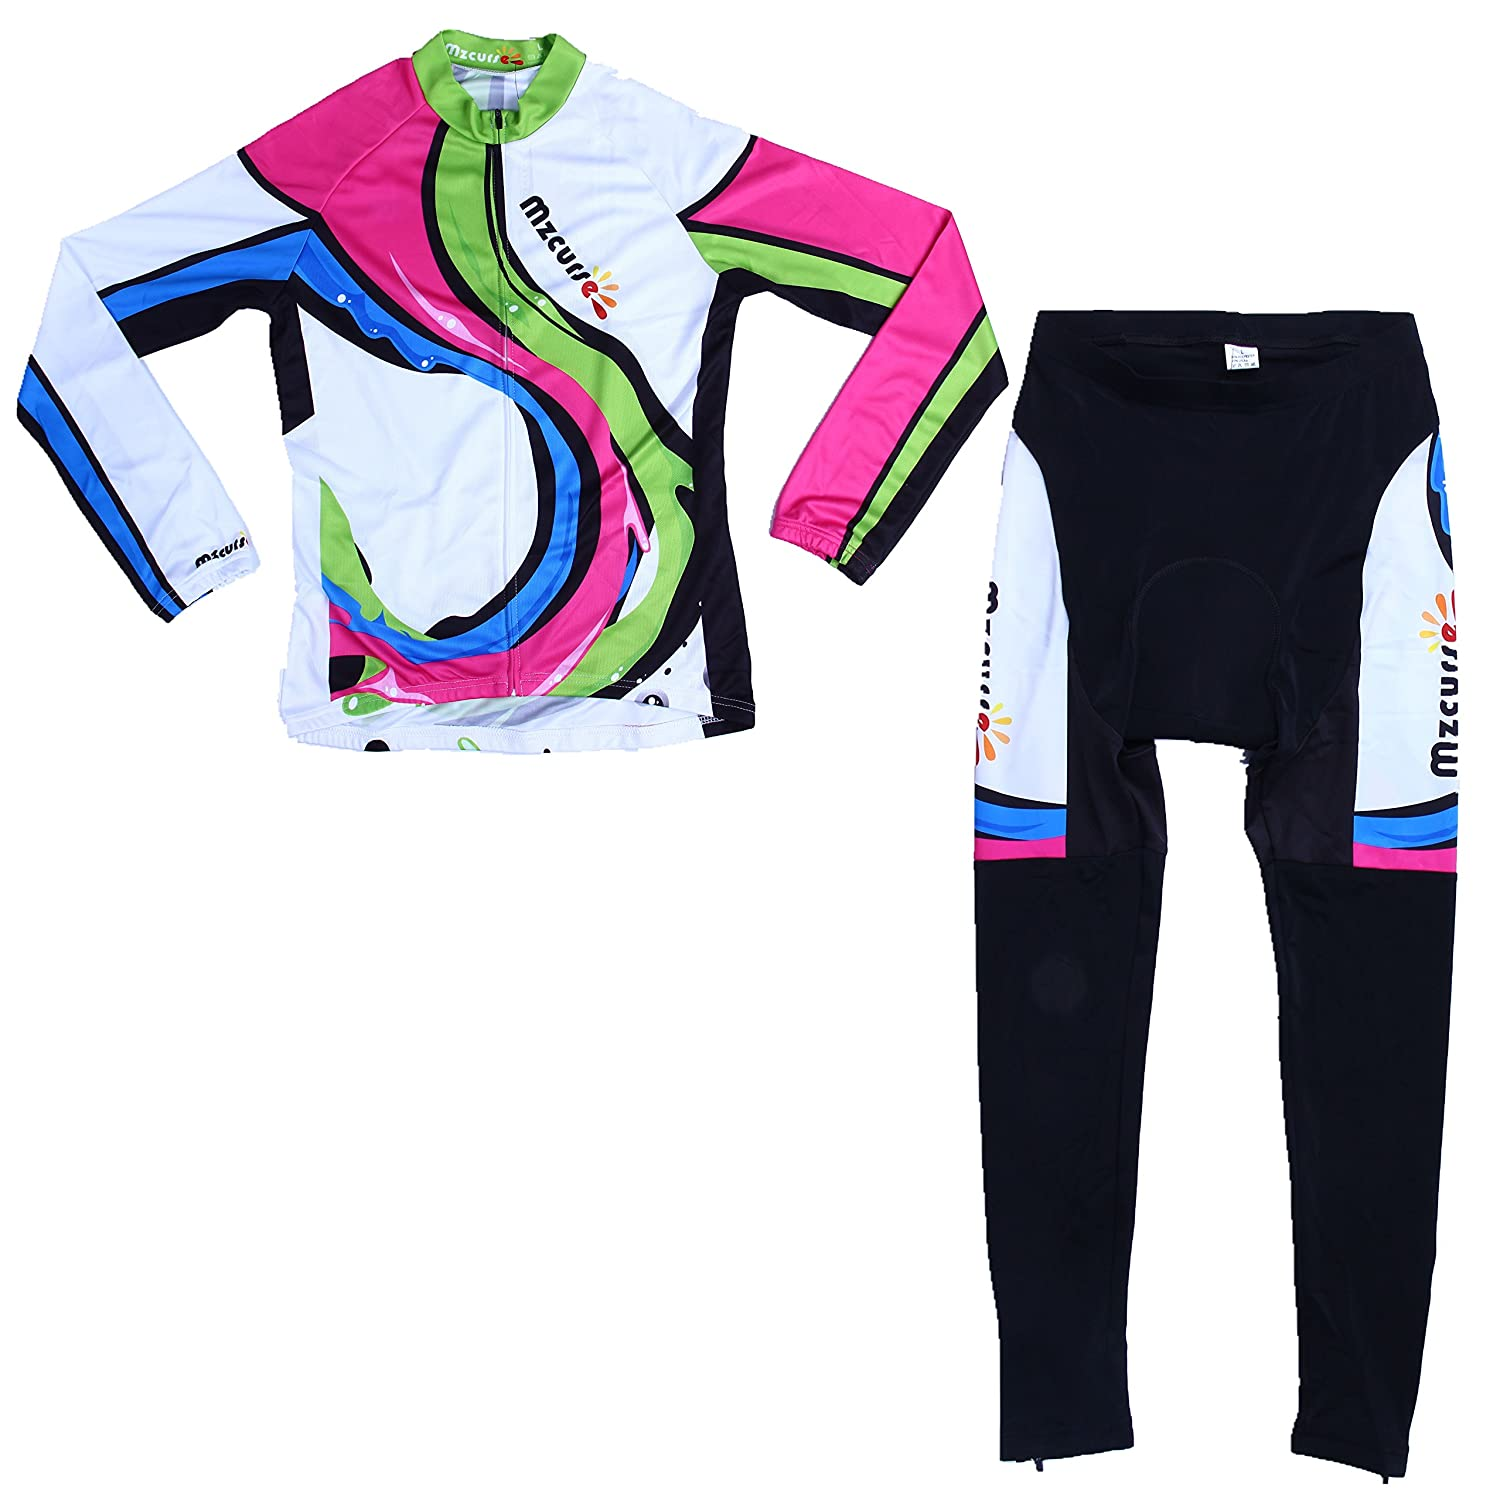 Mzcurse Women's Long Sleeve Cycling Jersey Shirts + Compression Pants Set